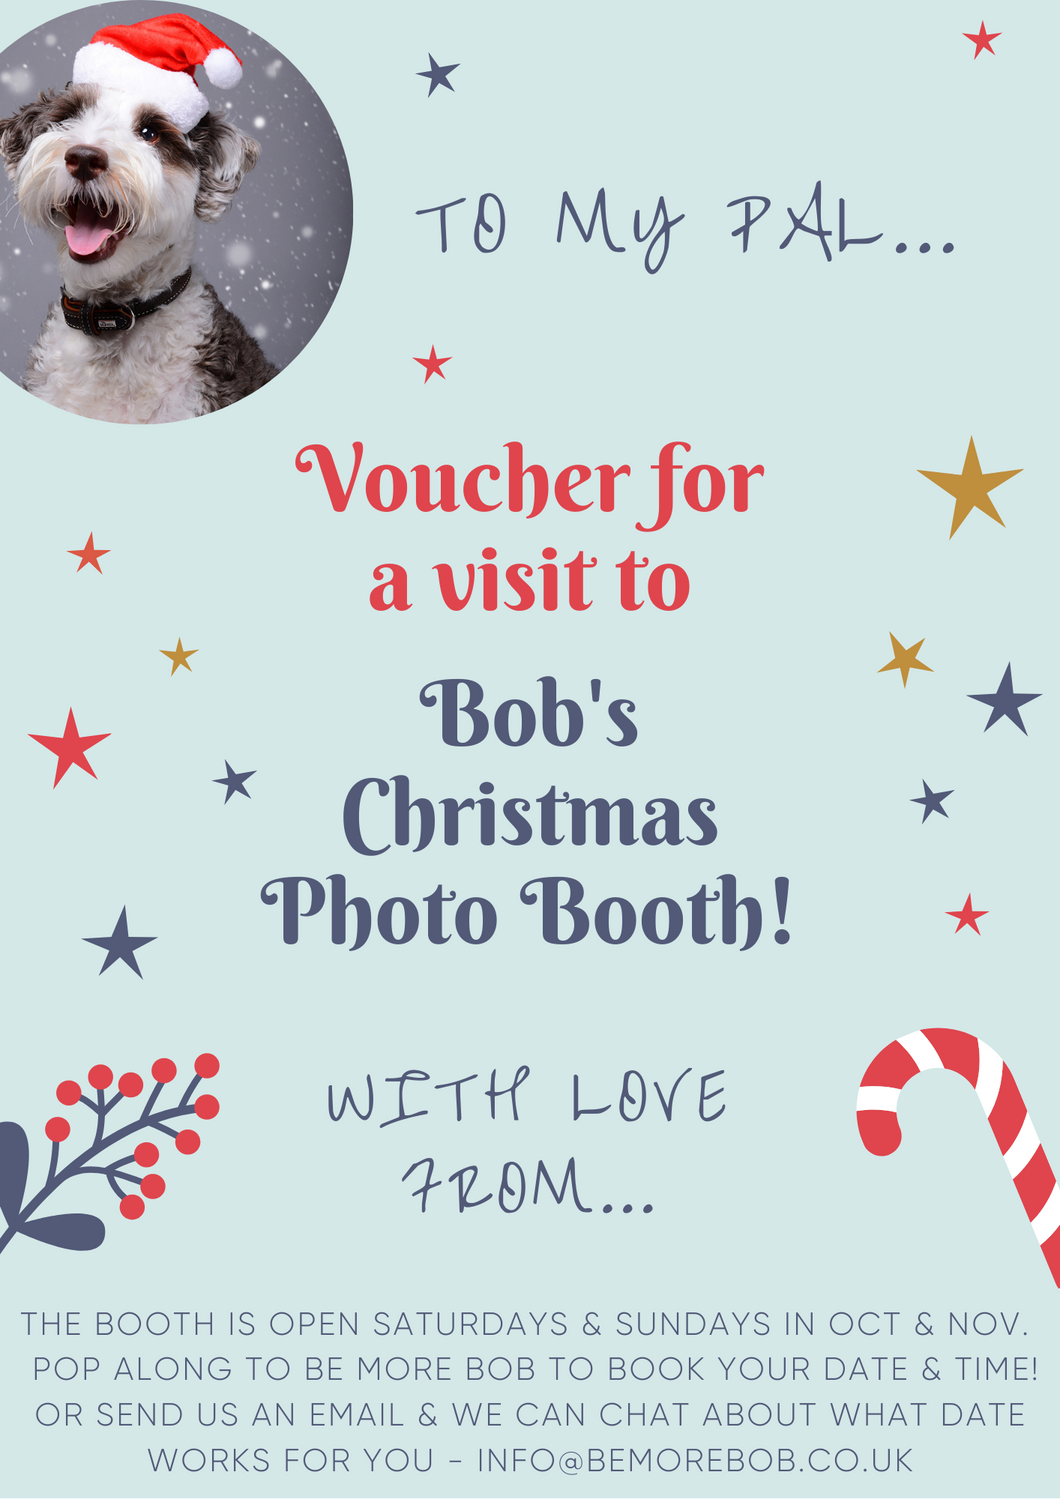 Voucher for Bob's Christmas Photo Booth - send to your best pals!